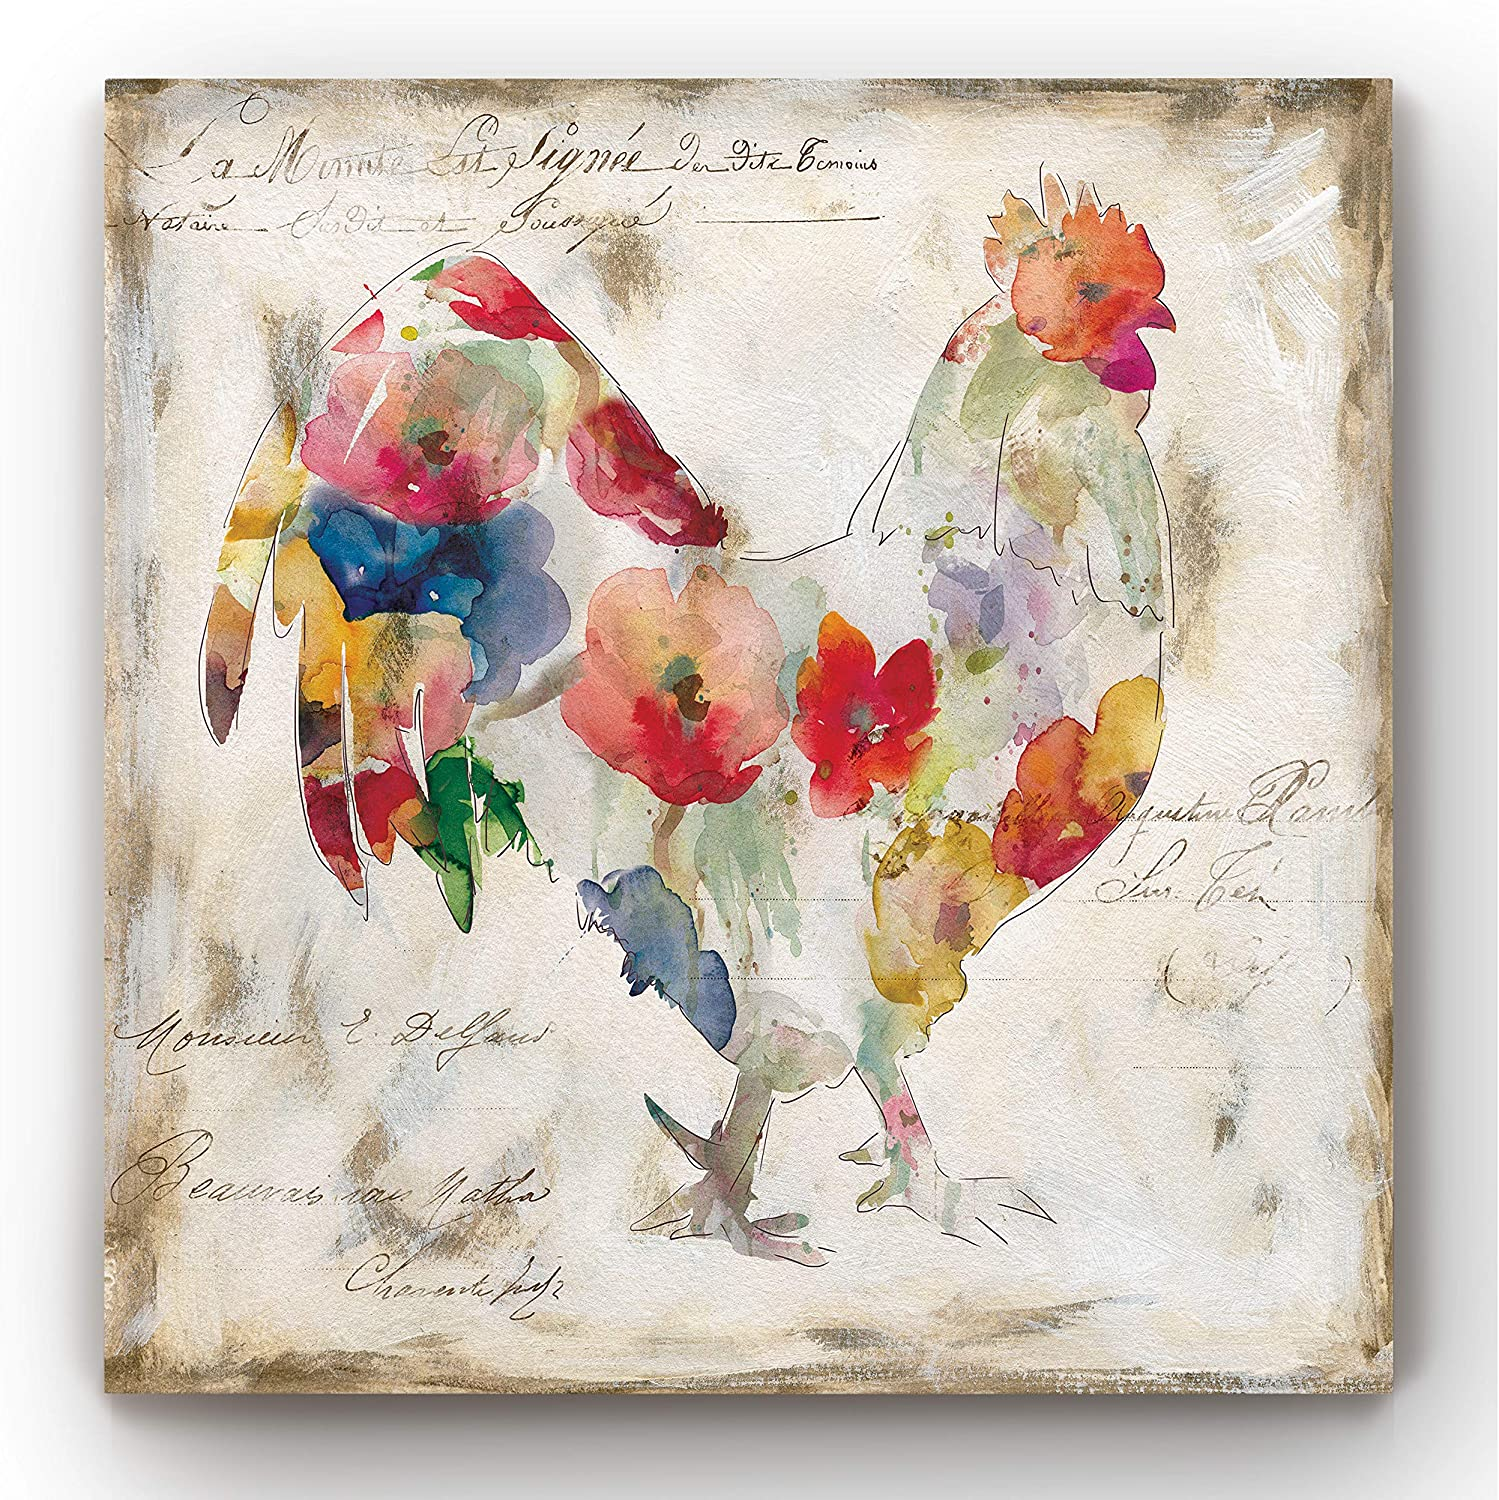 Renditions Gallery Flowered Rooster Wall Art, Chicken & Farm Artwork, Multicolored Flower Design, Country Barn Decor, Premium Gallery Wrapped Canvas, Ready to Hang, 12 in H x 12 in W, Made in America